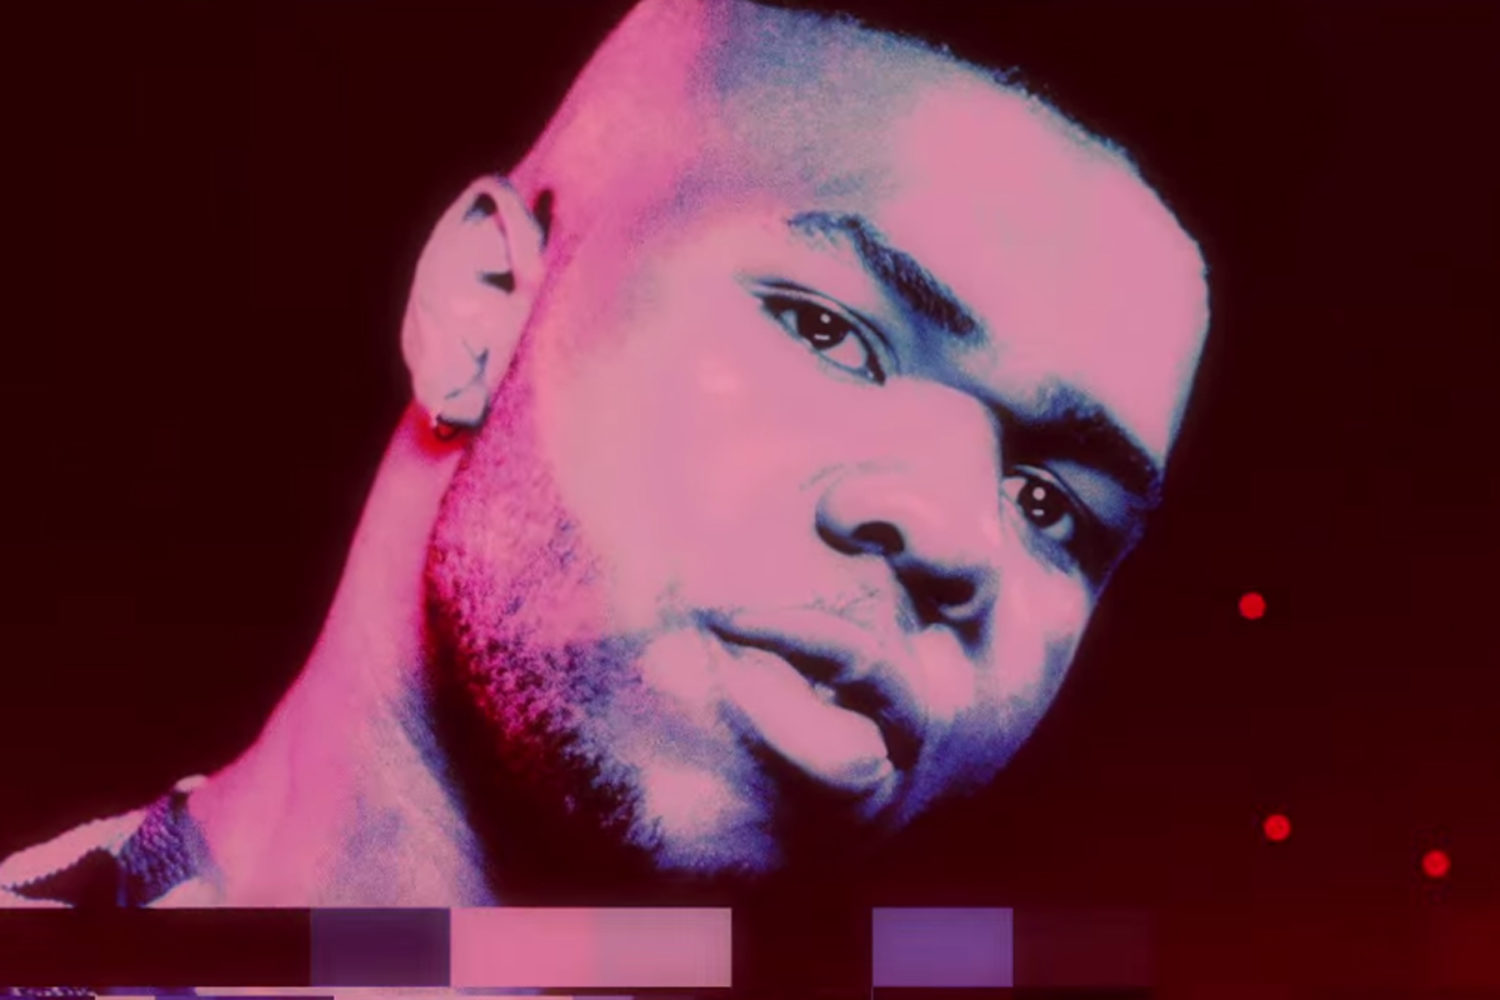 MNEK shares new 'Wrote a Song About You' video